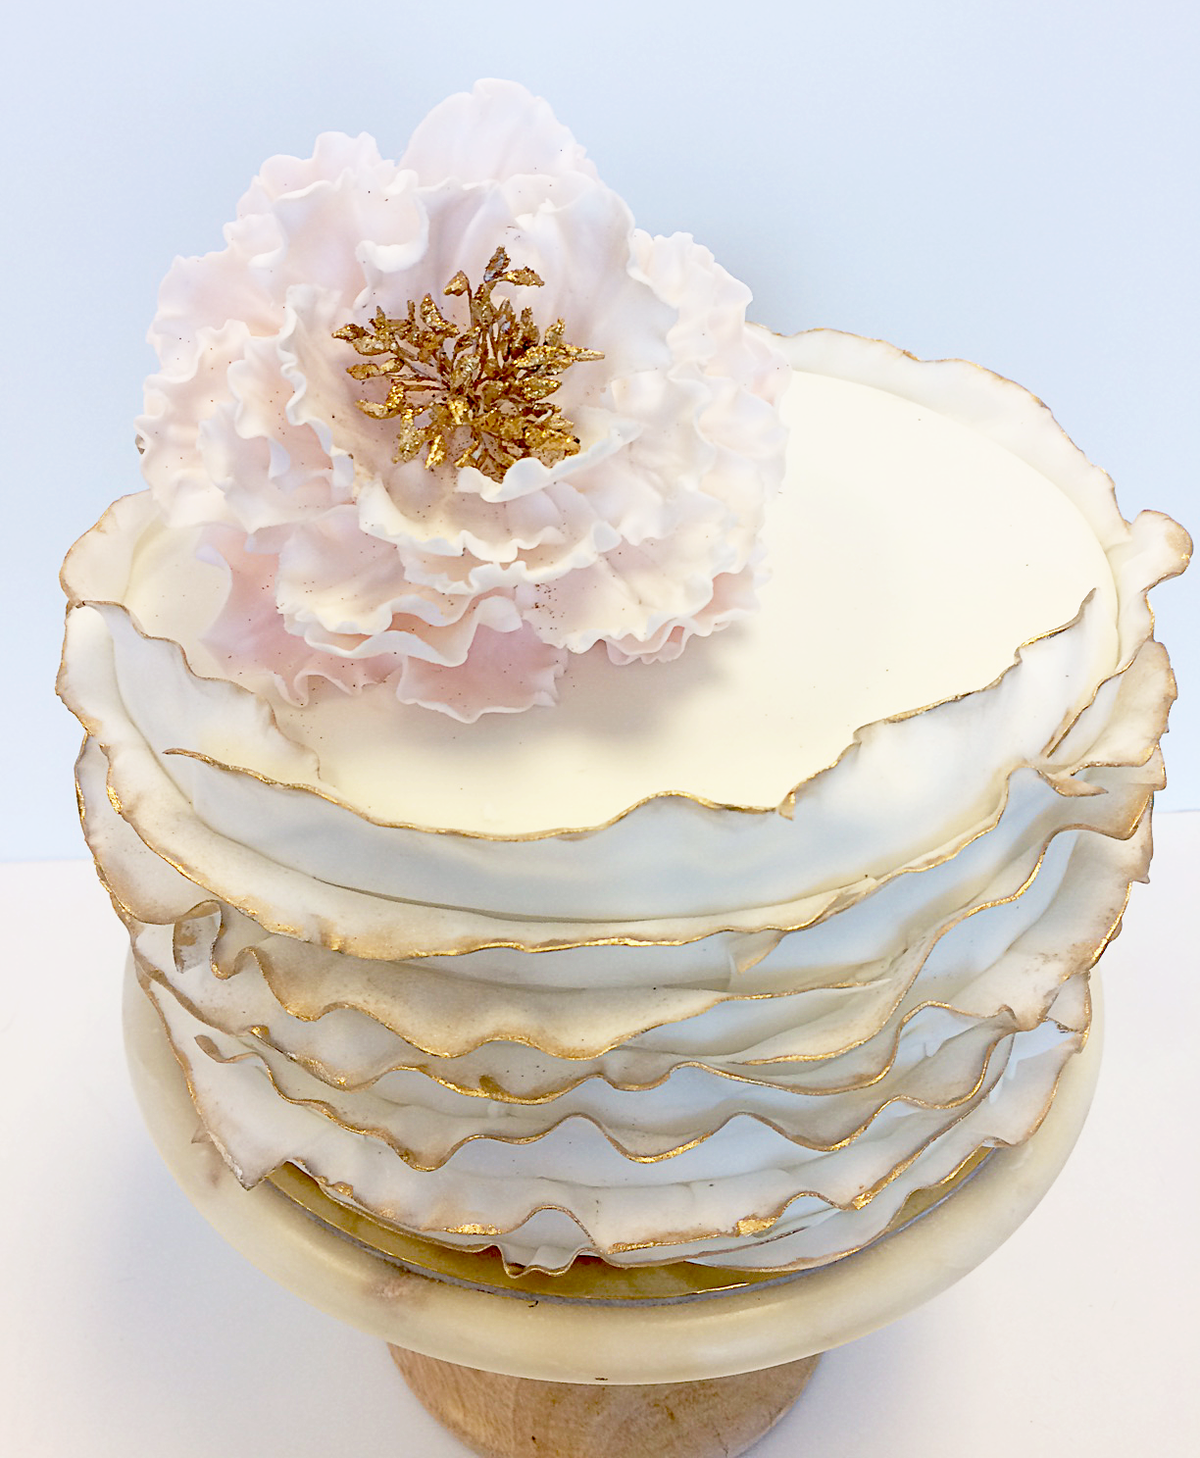 Whippt Desserts Ruffle fondant cake with sugar bloom June 2017